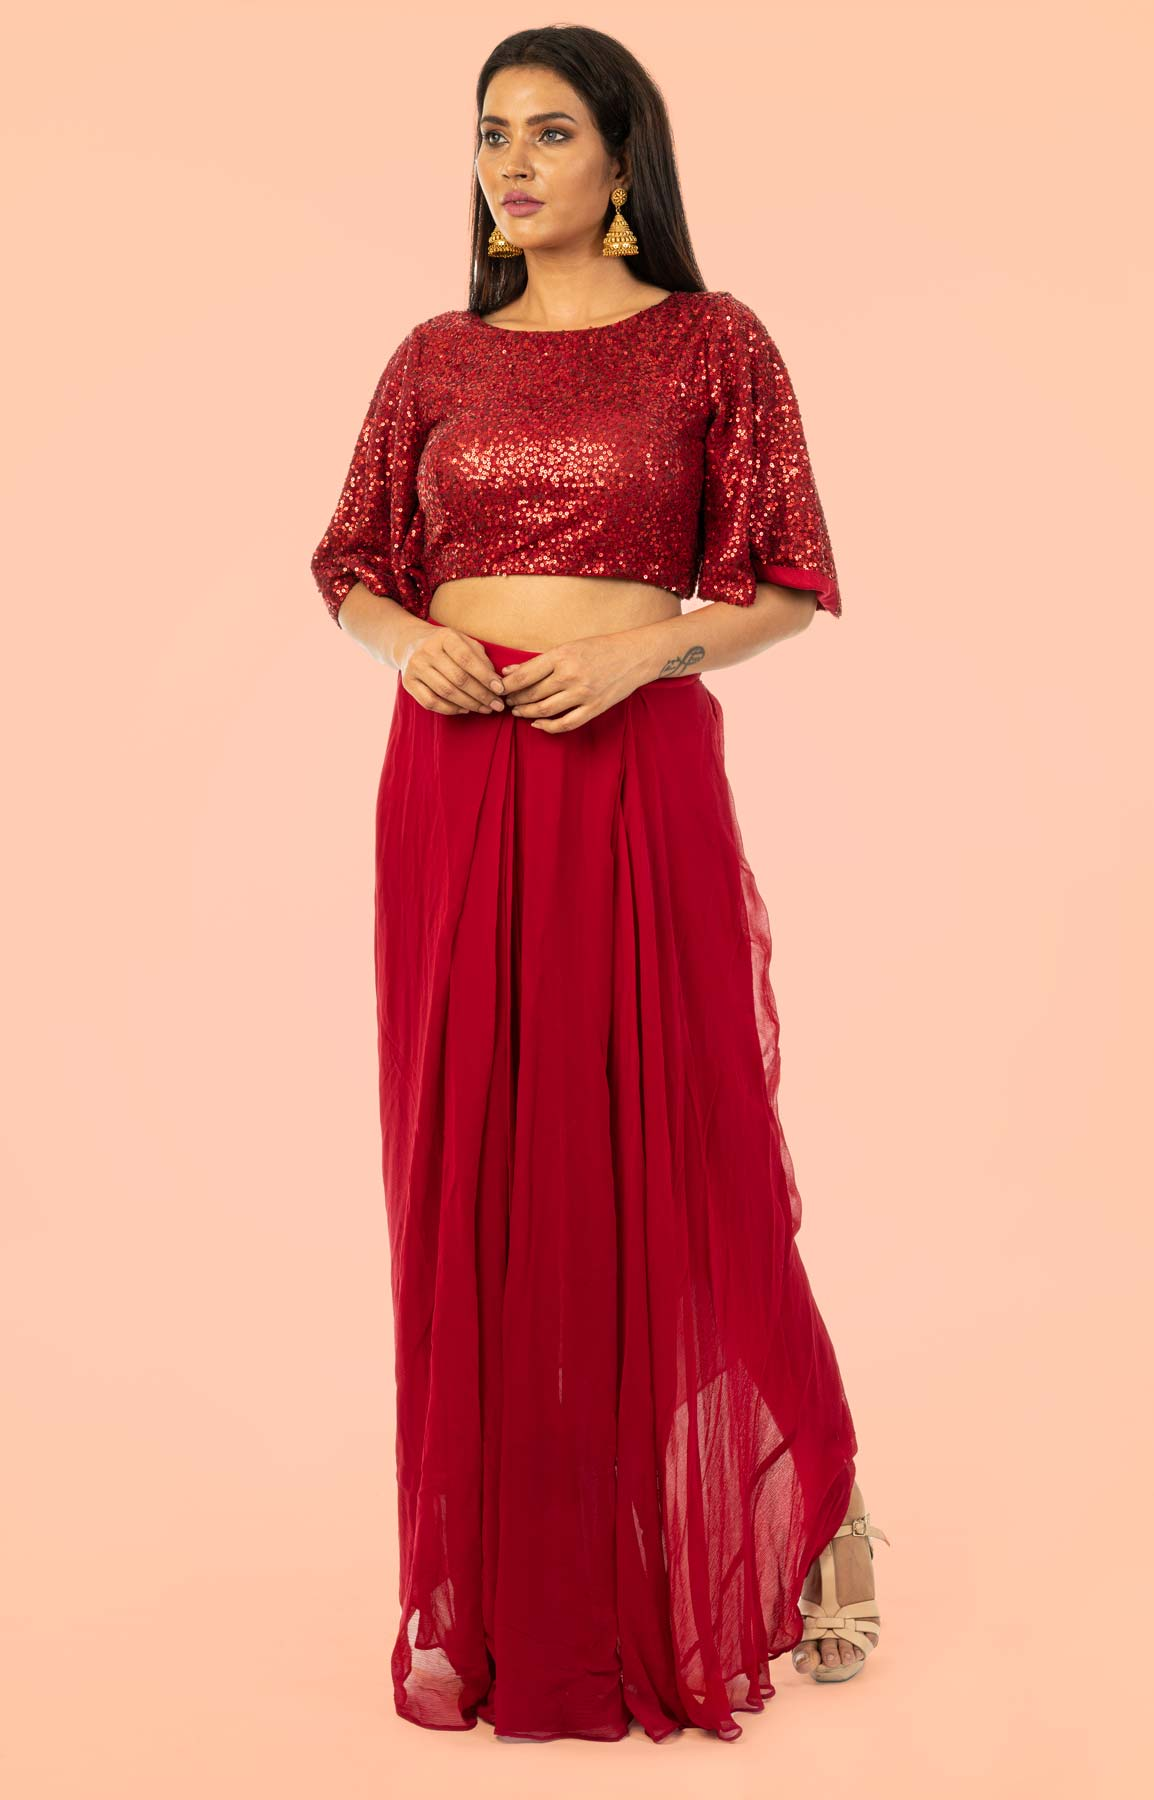 Maroon Crop Top And Skirt Embraced With Bell Shaped Sleeves – Viraaya By Ushnakmals